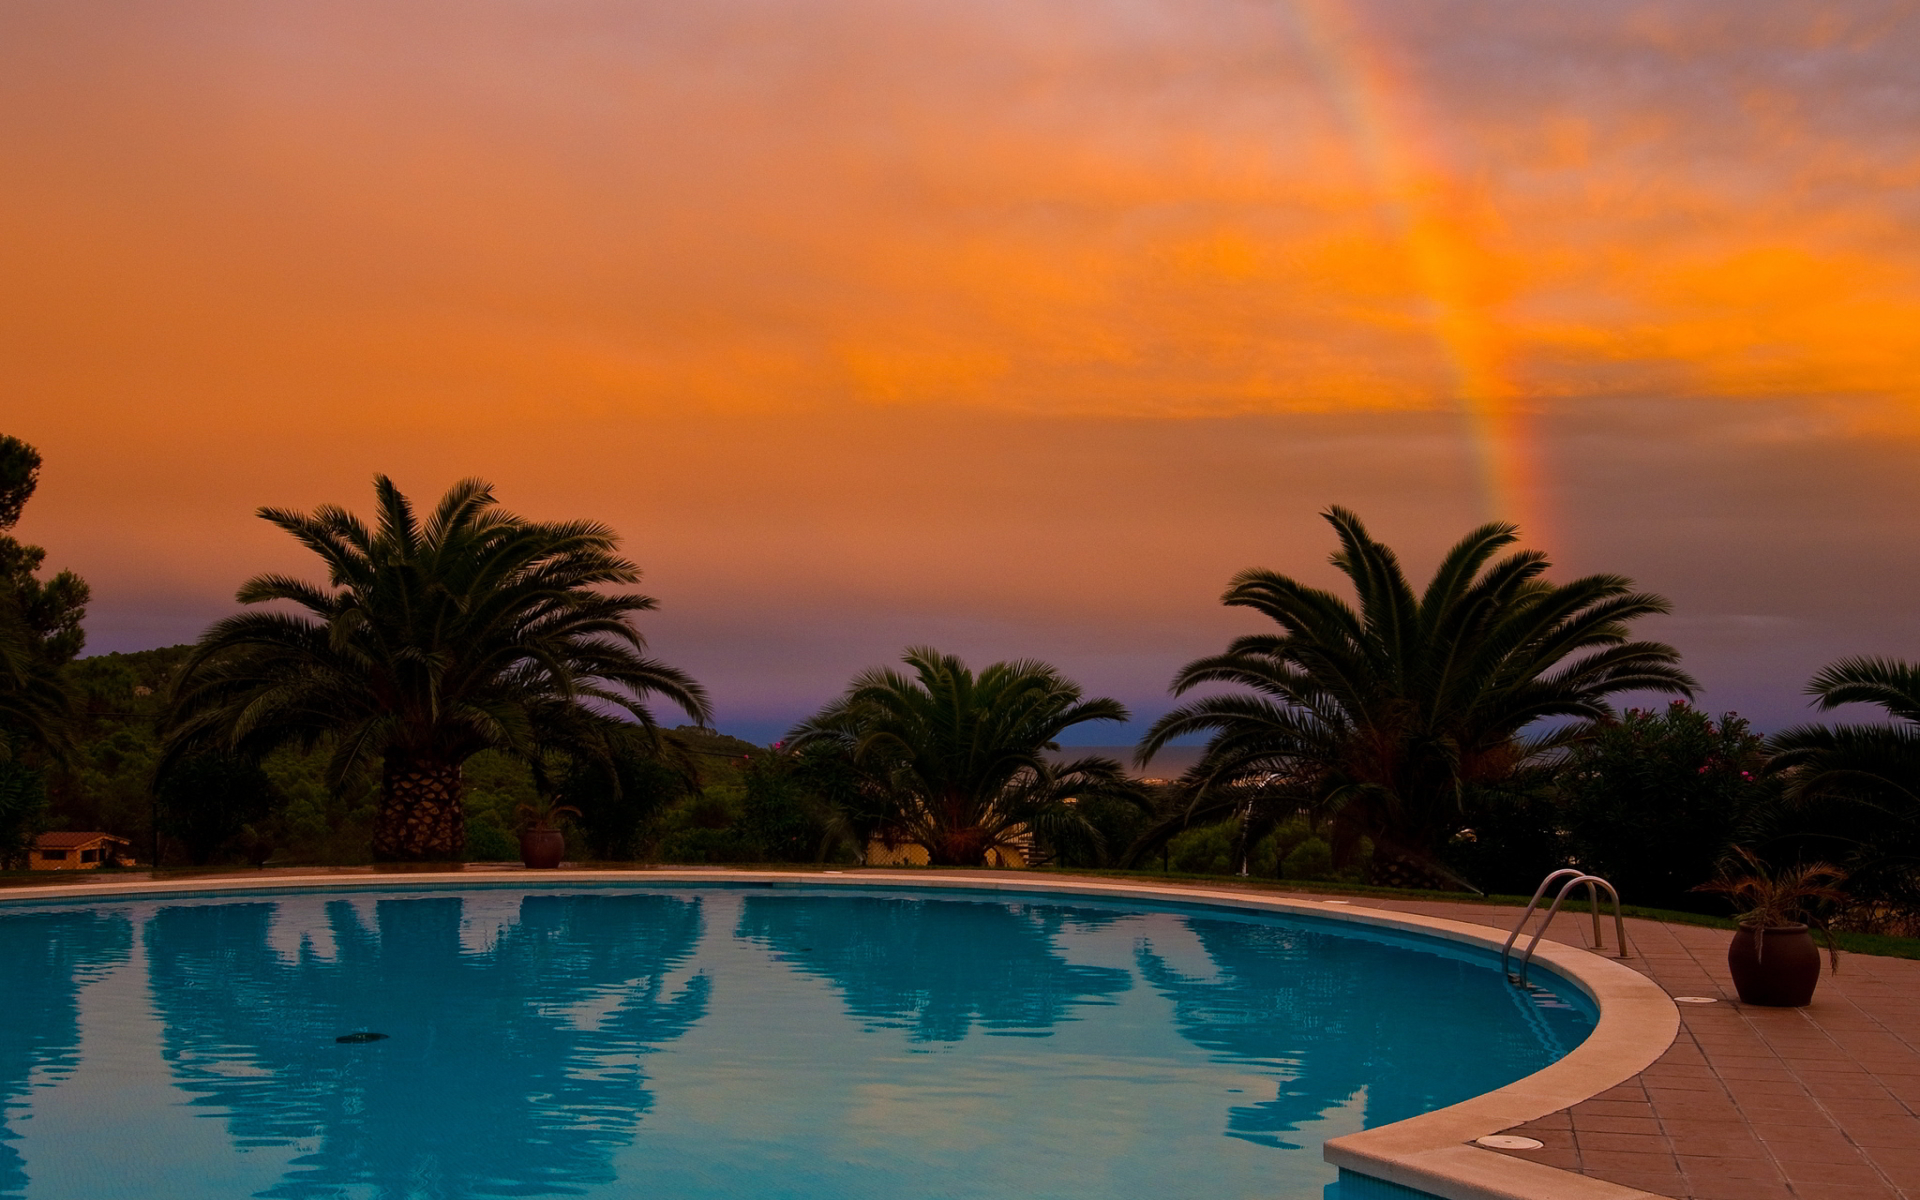 Pool rainbow sunset